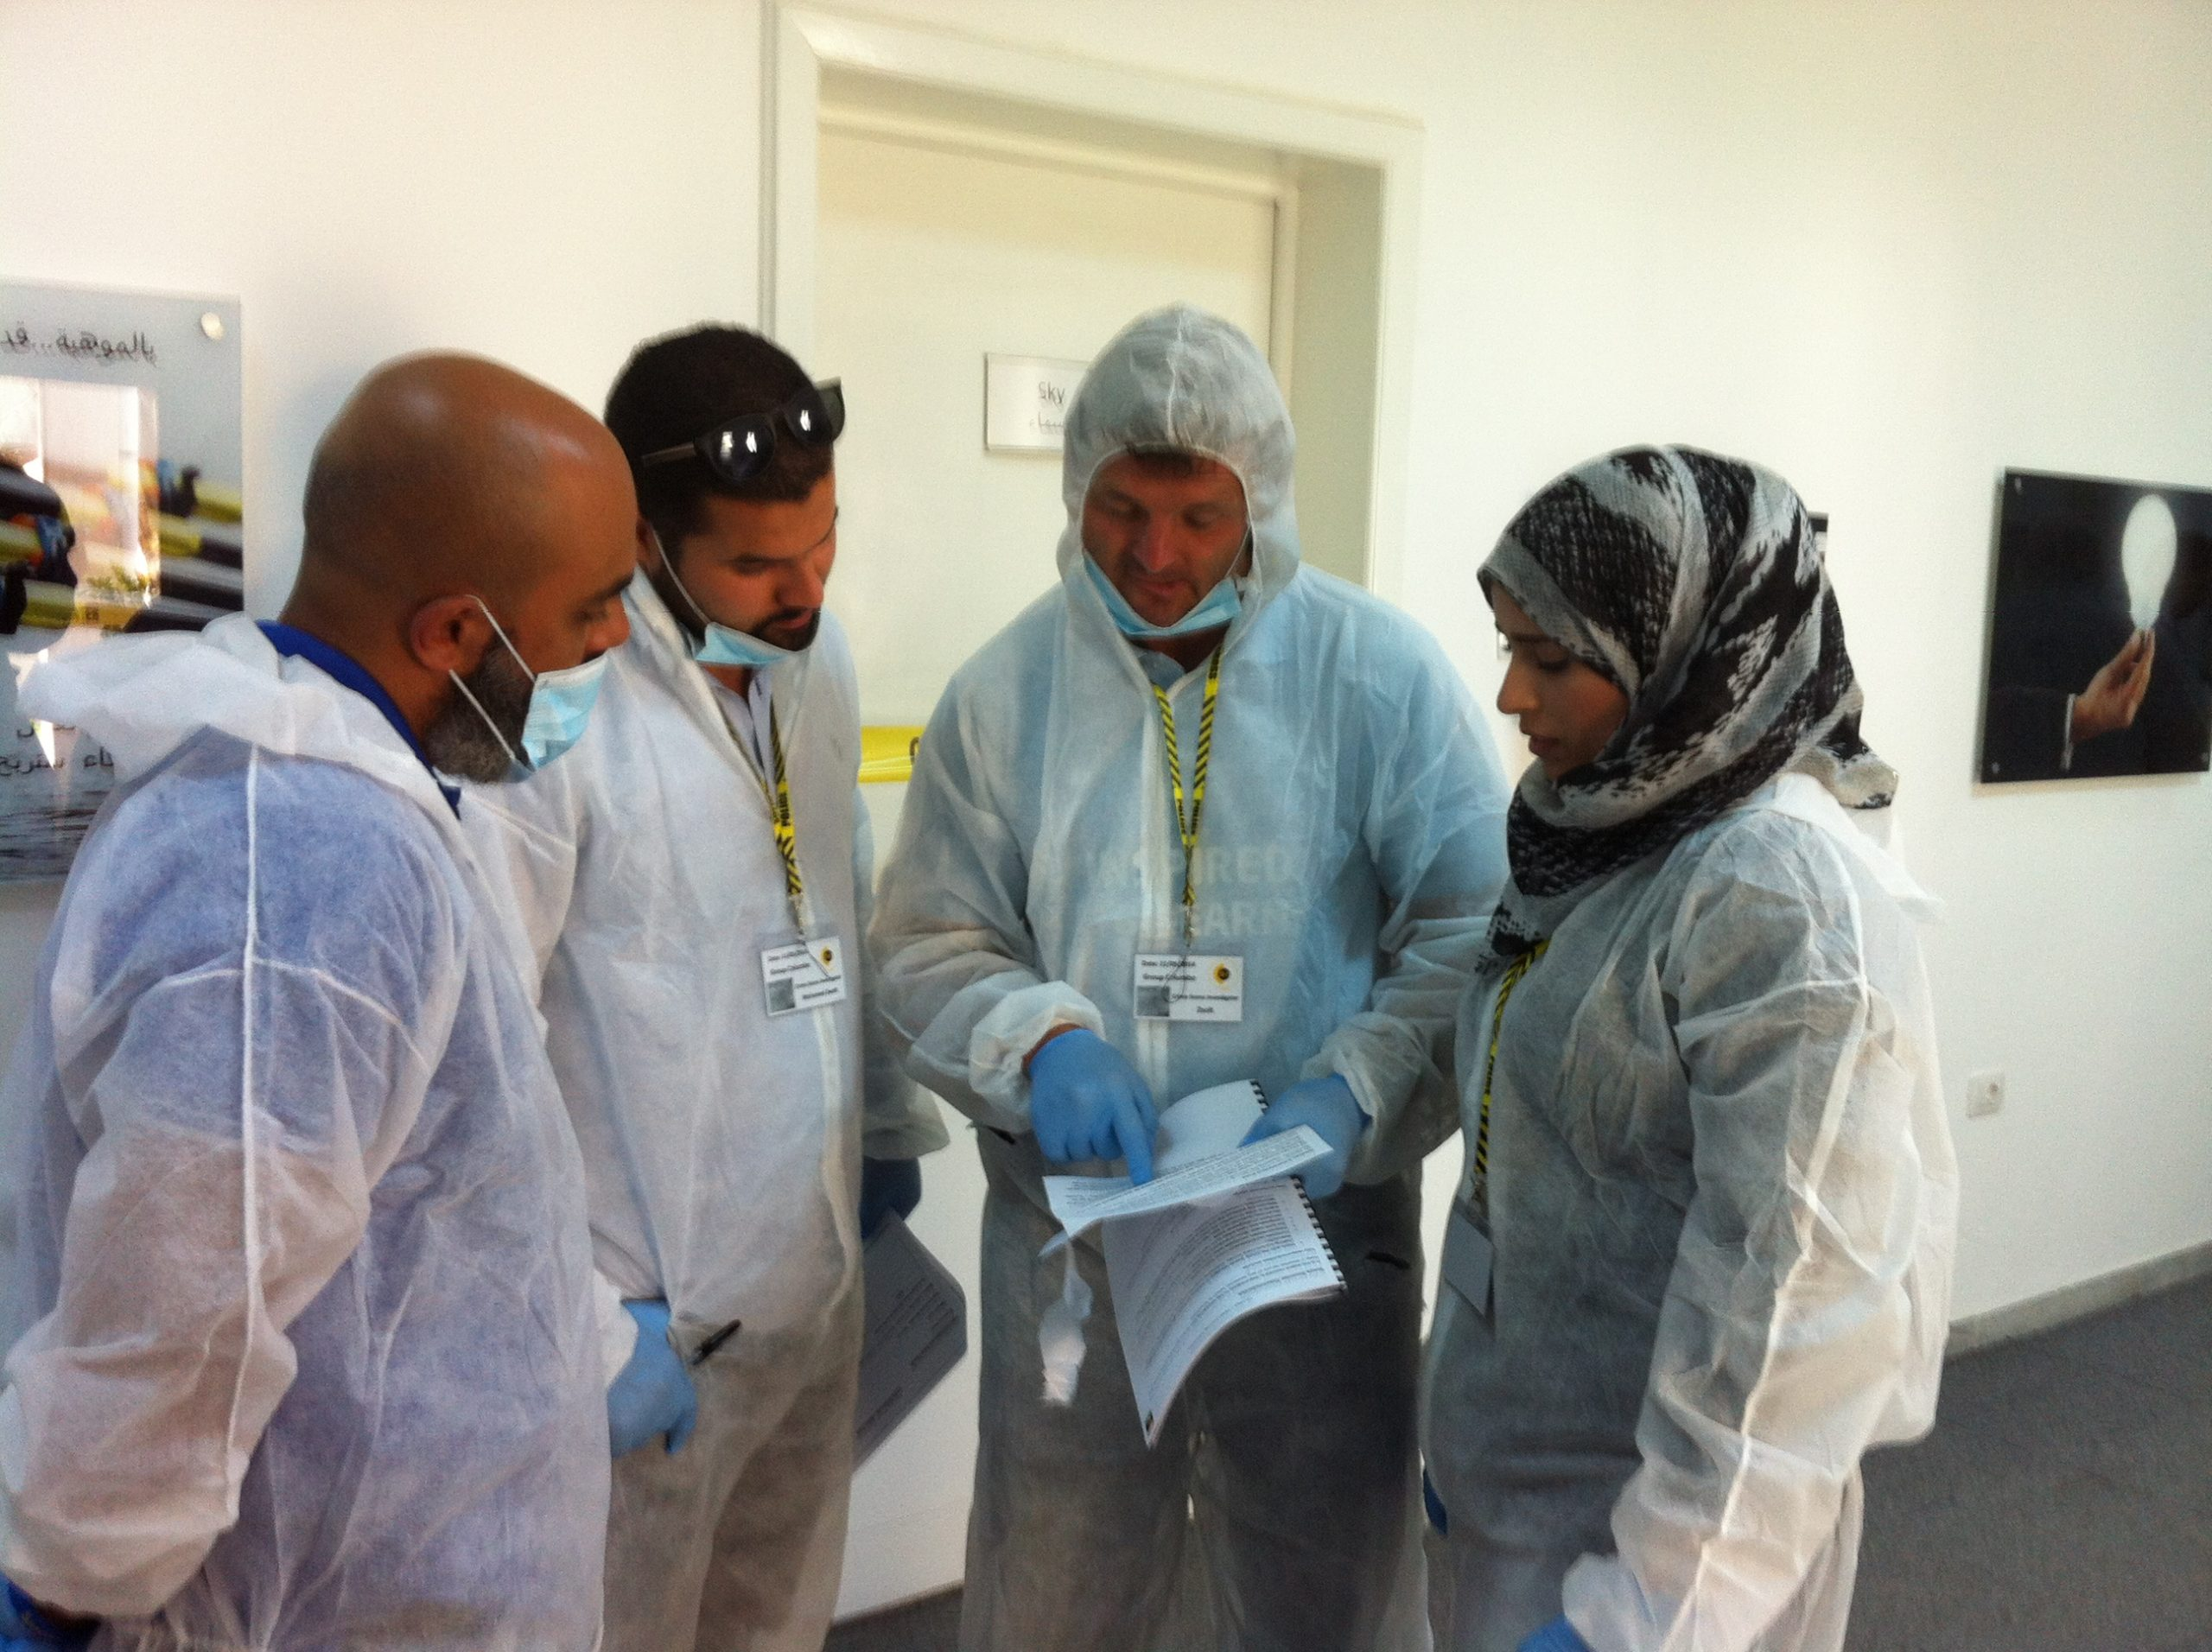 CSI Training and Events - Delegates at a CSI team building event in Libya